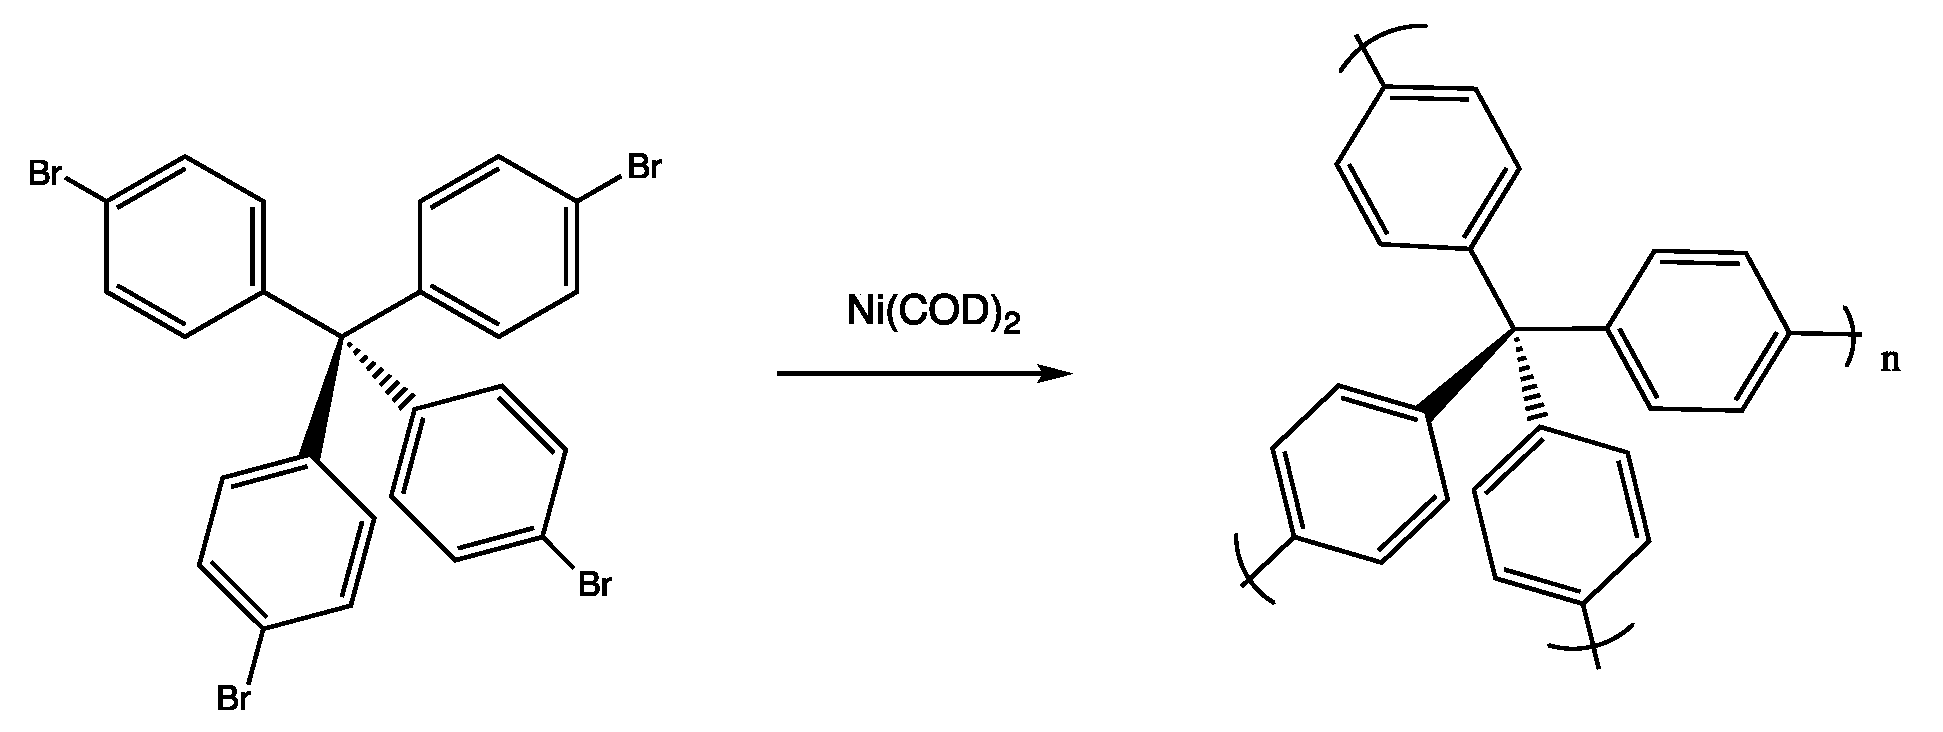 Polymers 11 00690 g011